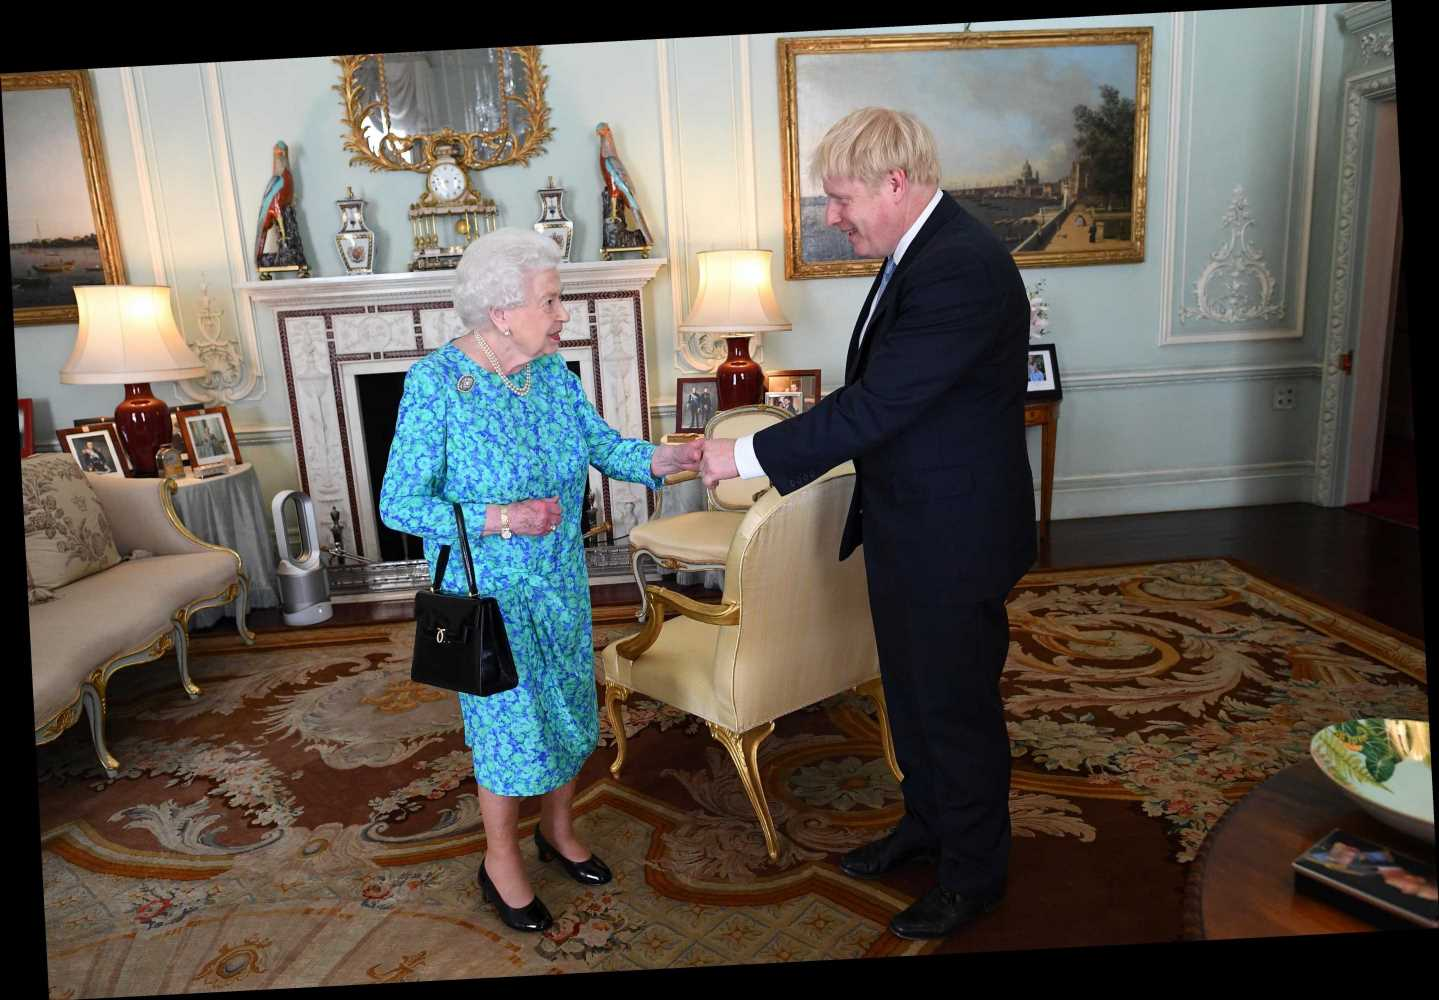 Boris Johnson Shares Rare Video Before Meeting with Queen: She's 'Always a Very Tough Interview'